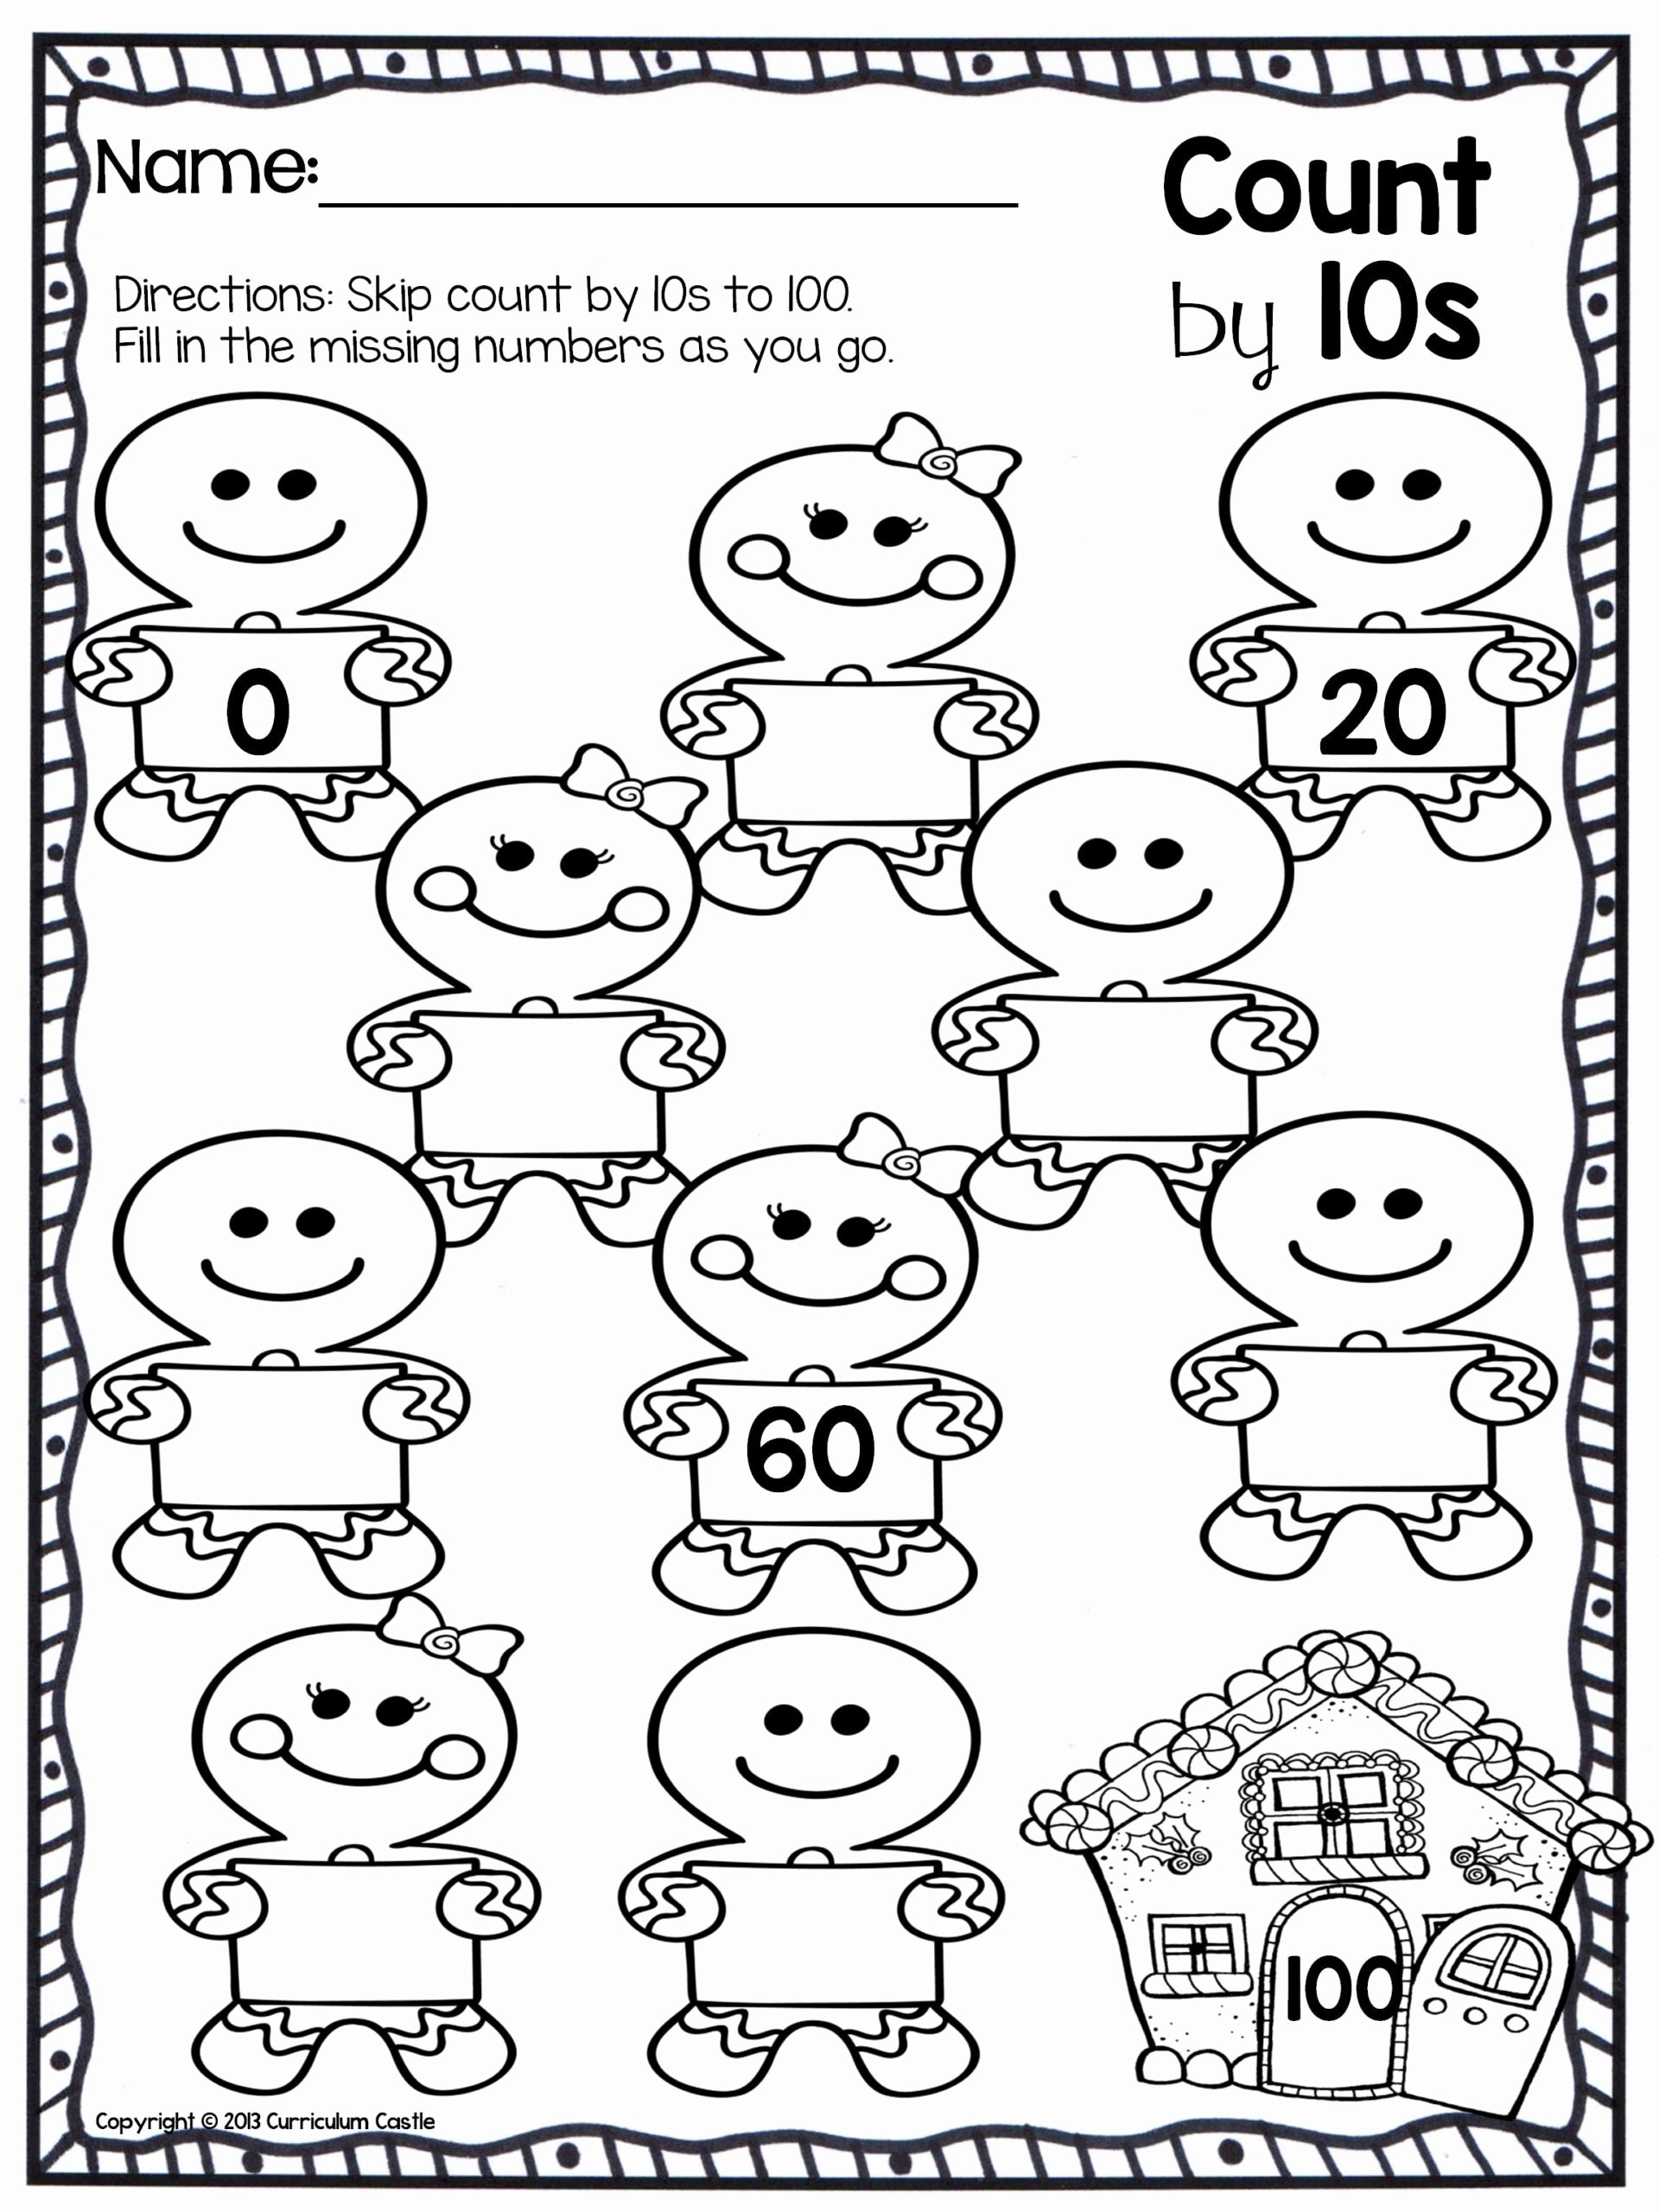 Number Counting Worksheets for Preschoolers Free Christmas Counting Worksheets Printable and Math Worksheets